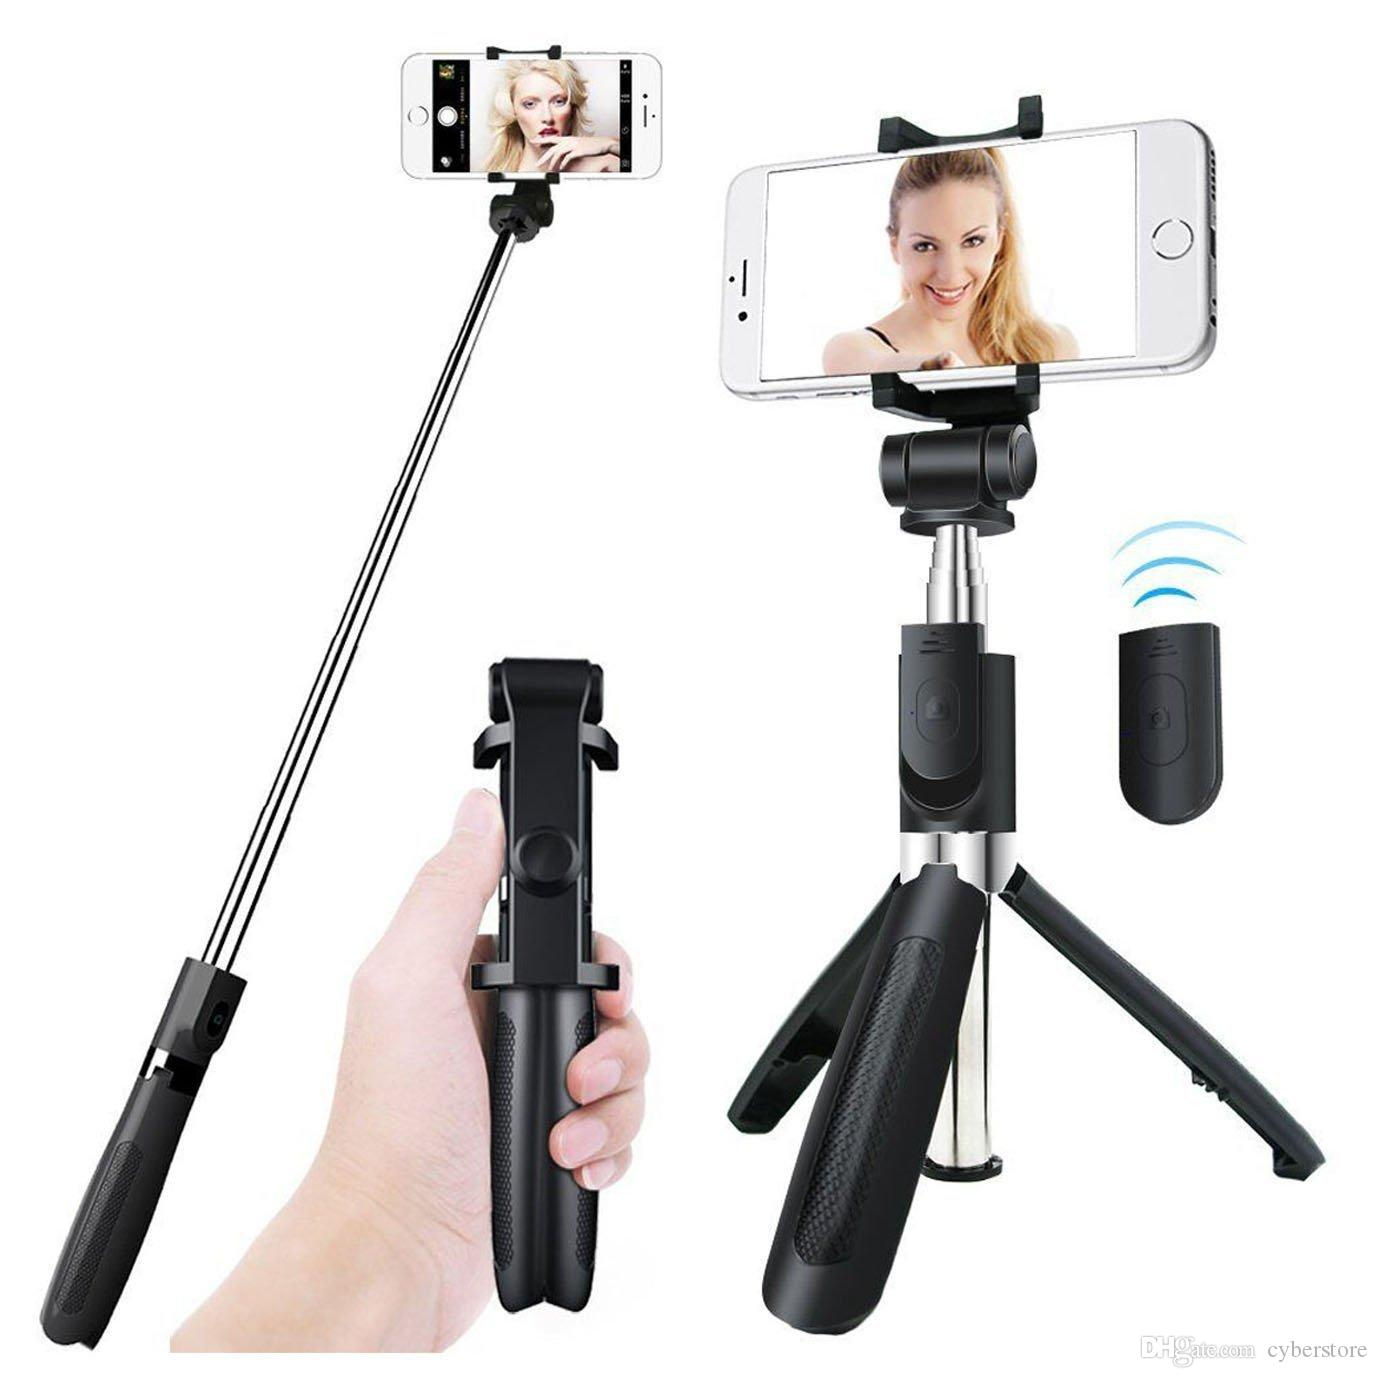 036f9374dcf8e9 2019 Bluetooth Extendable Selfie Stick Tripod With Wireless Remote And  Monopod Stand For Samsung Huawei Xiaomi IPhone X From Cyberstore, $5.03 |  DHgate.Com